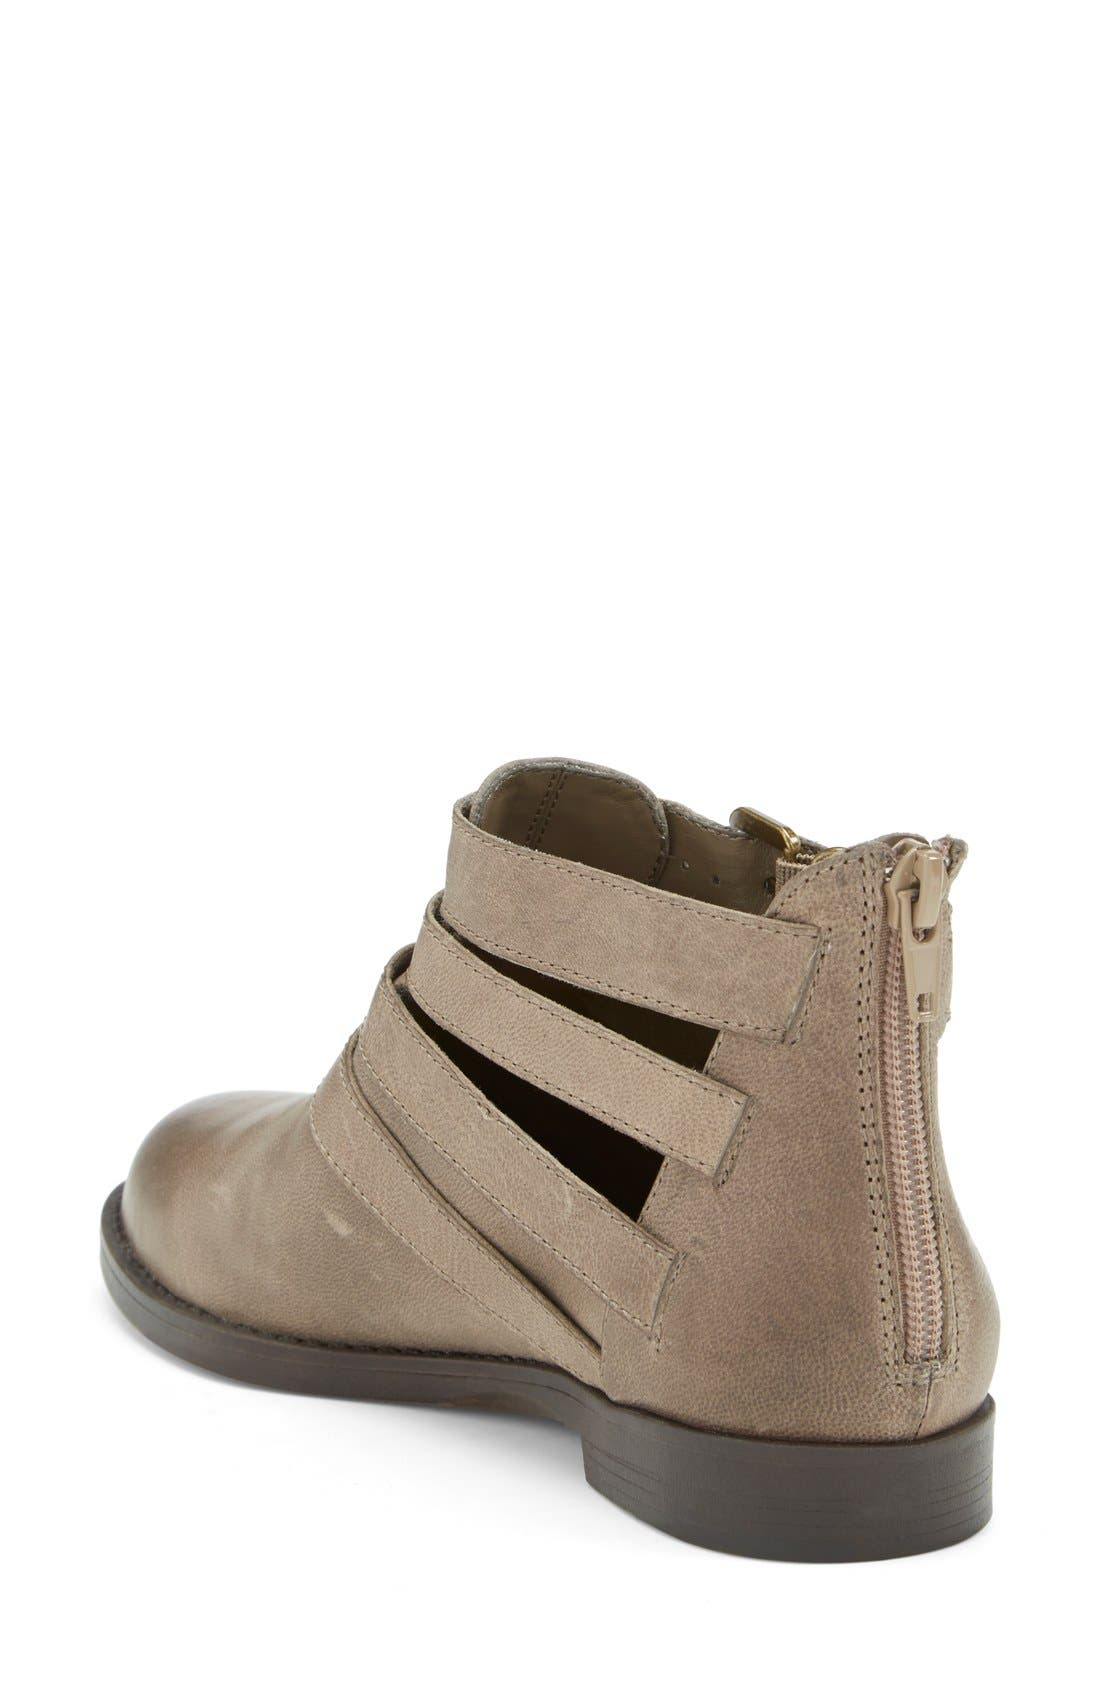 Alternate Image 2  - Bella Vita 'Ronan' Buckle Leather Bootie (Women) (Online Only)